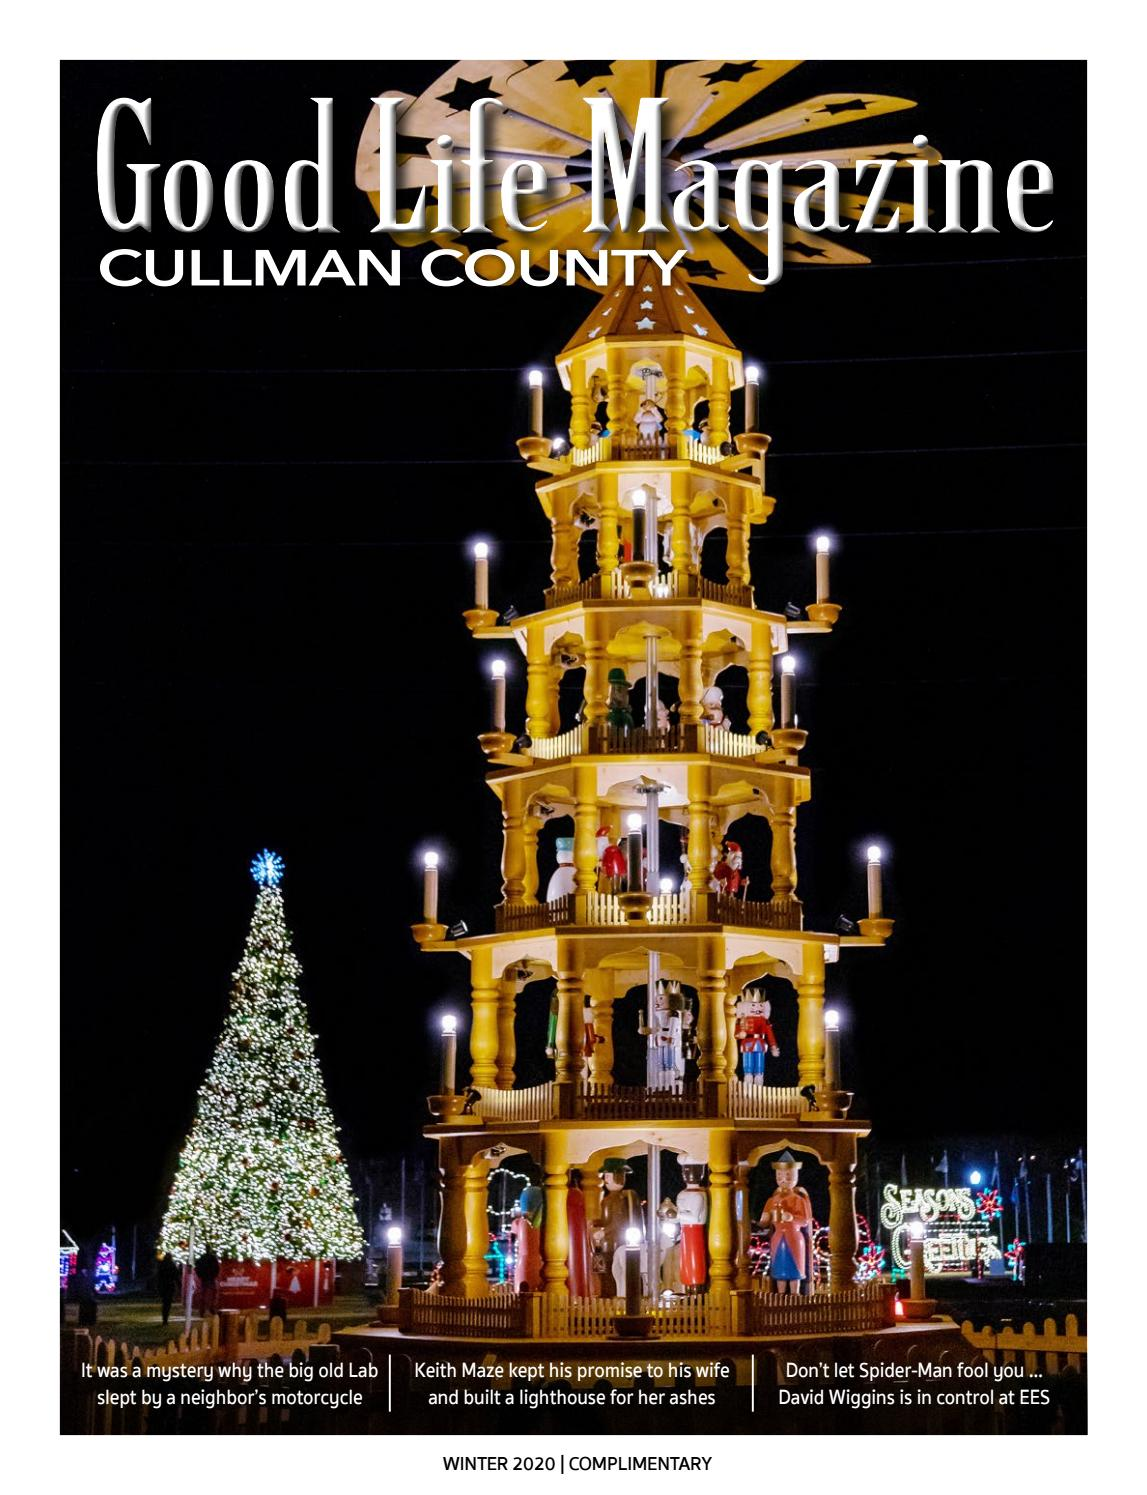 Cullman Good Life Magazine Winter 2020 By The Good Life Magazine Issuu